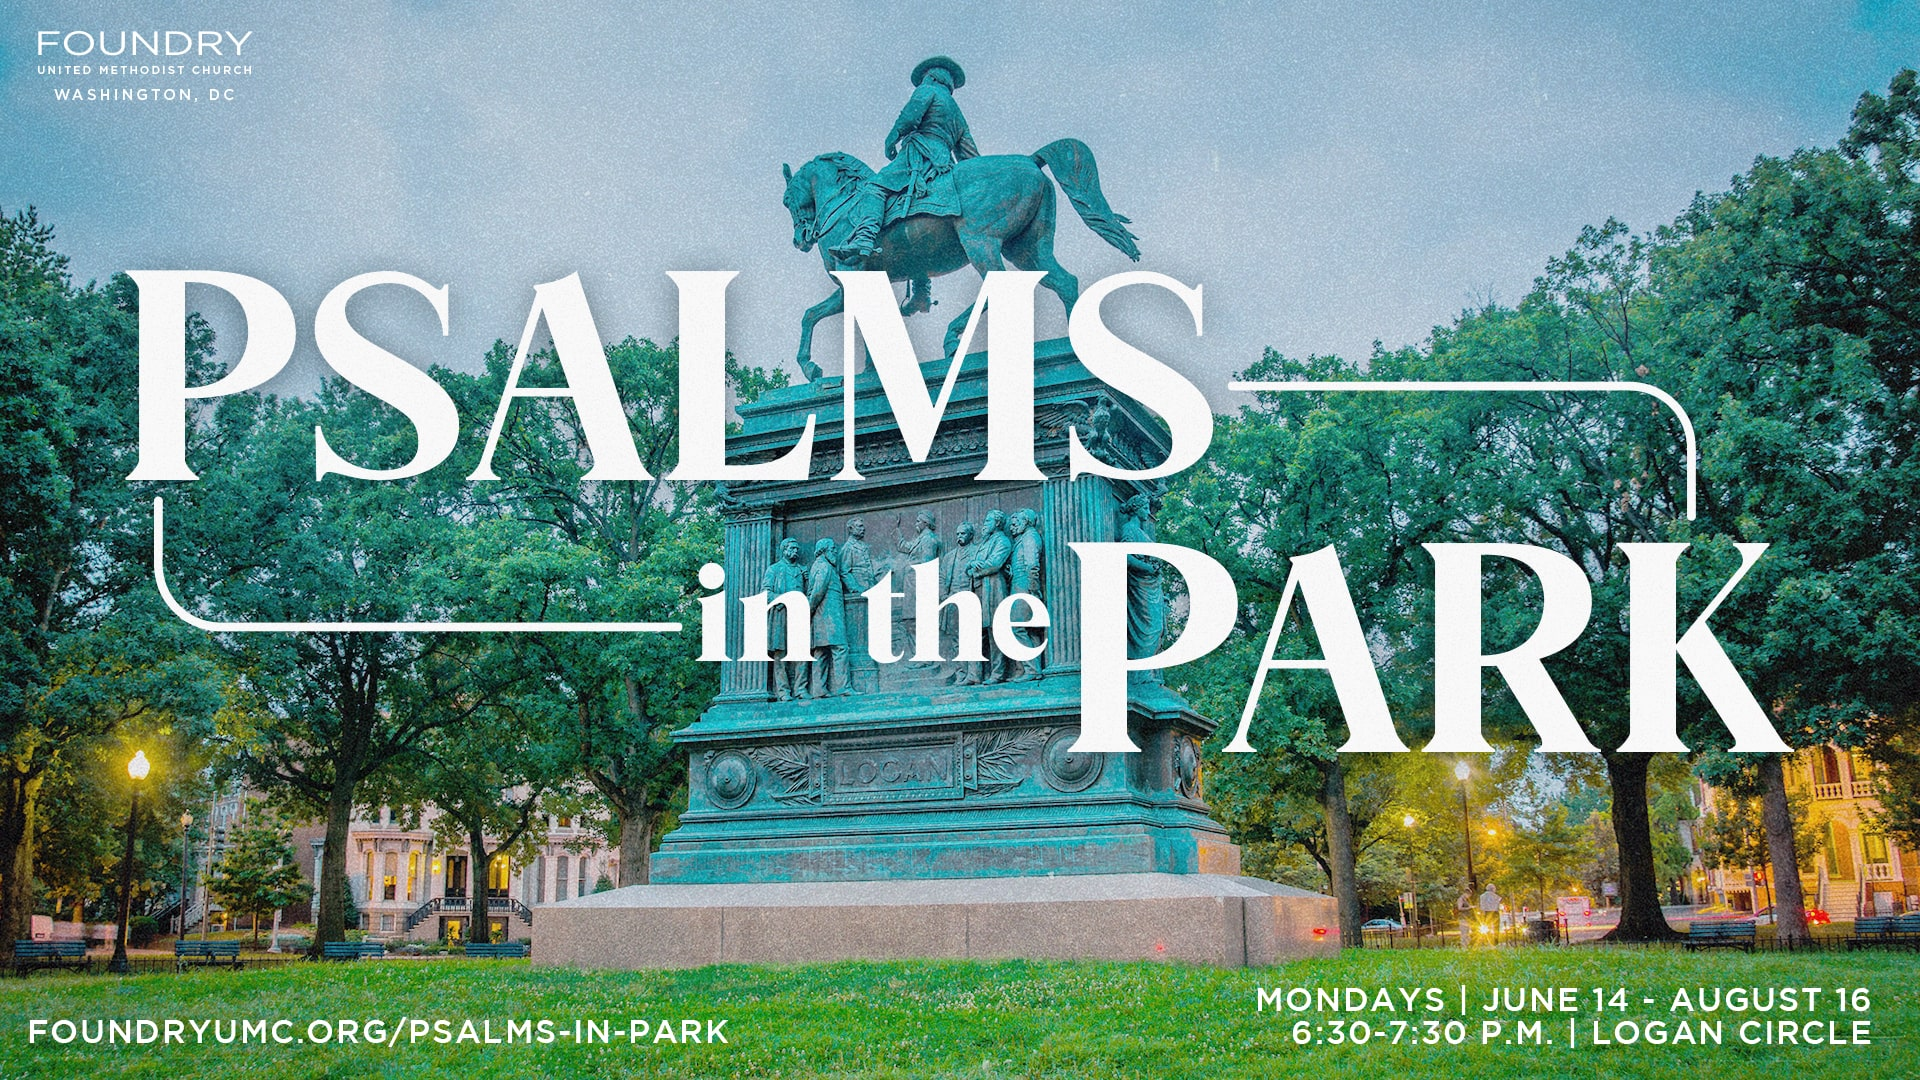 Psalms in the Park: A Bible Study